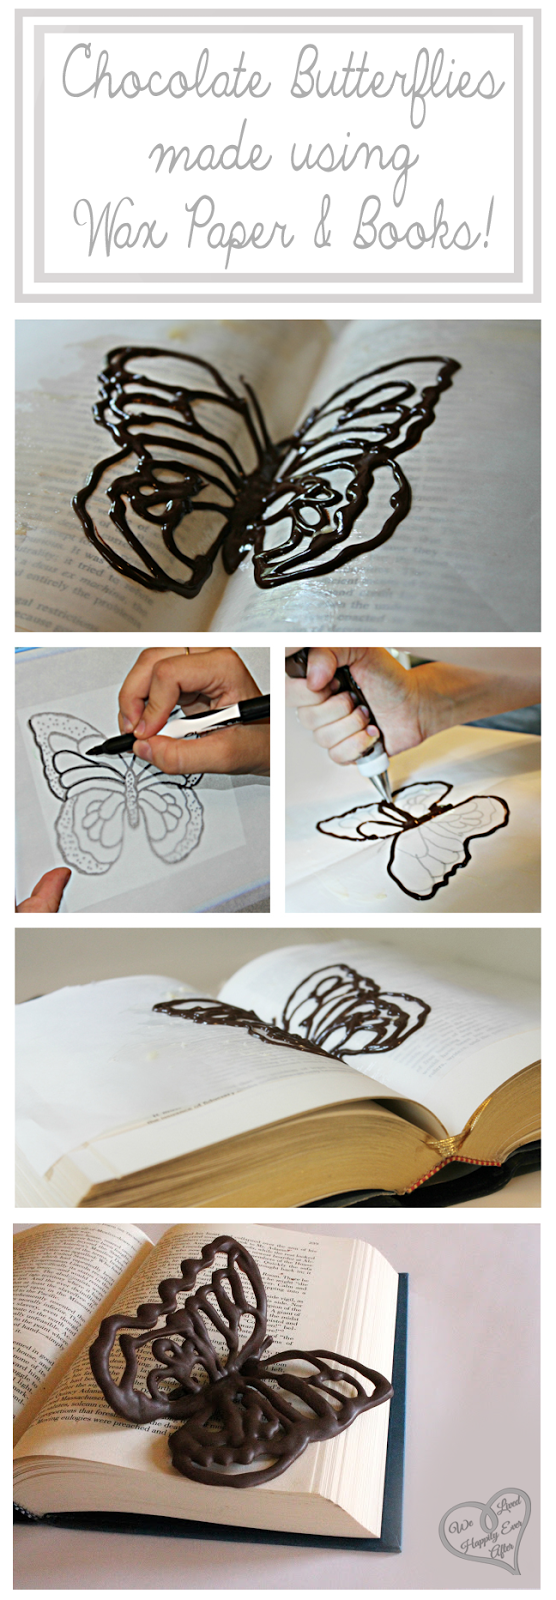 We Lived Happily Ever After: Chocolate Butterflies Using Wax Paper and Books! {Pattern Included}